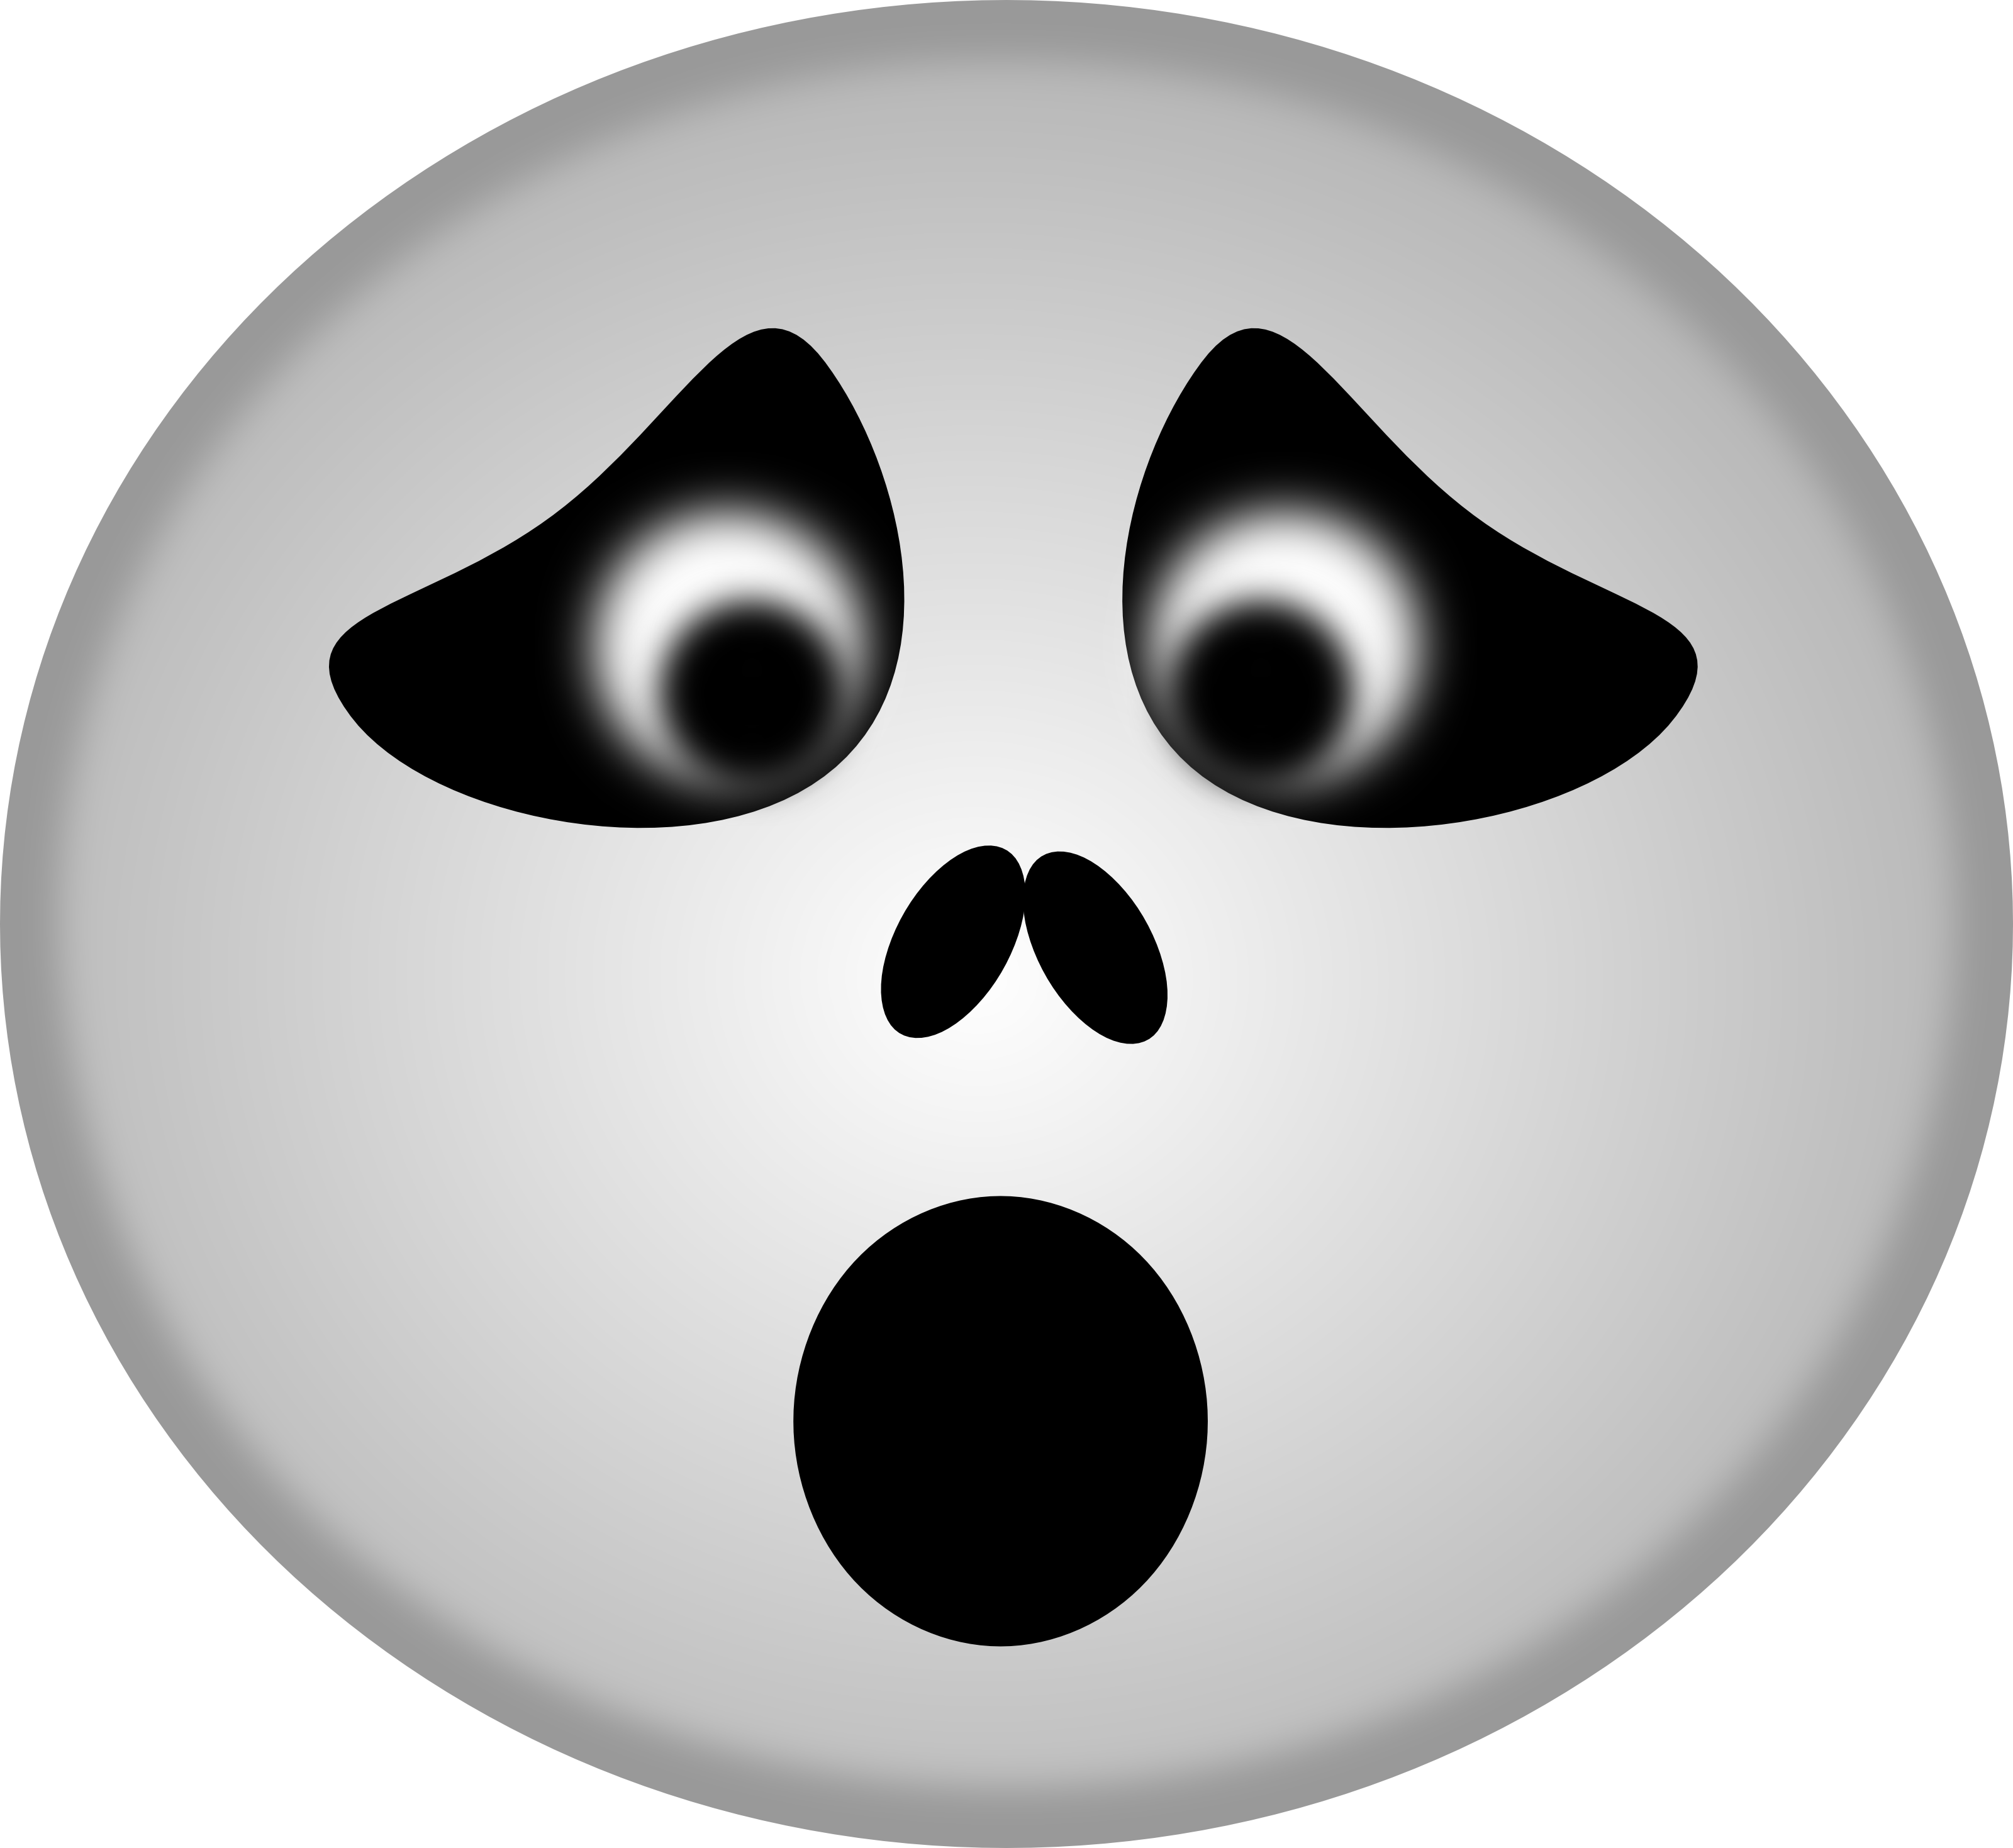 Cute halloween faces clipart graphic download 28+ Collection of Halloween Faces Clipart | High quality, free ... graphic download